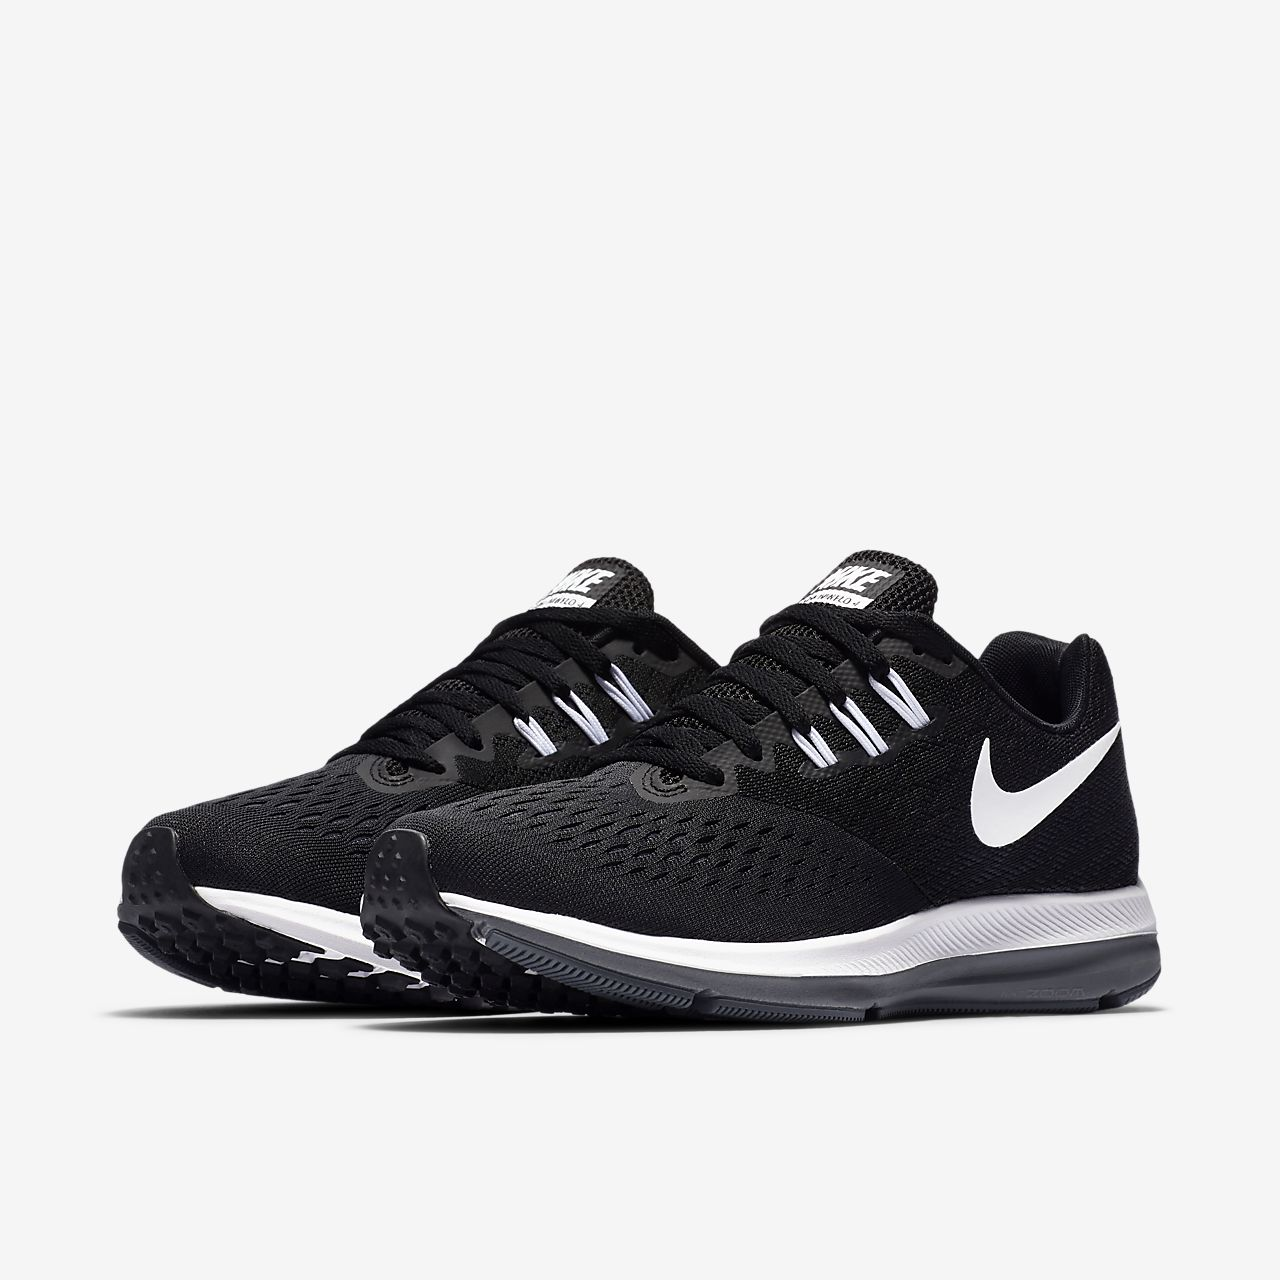 ... Nike Zoom Winflo 4 Women's Running Shoe